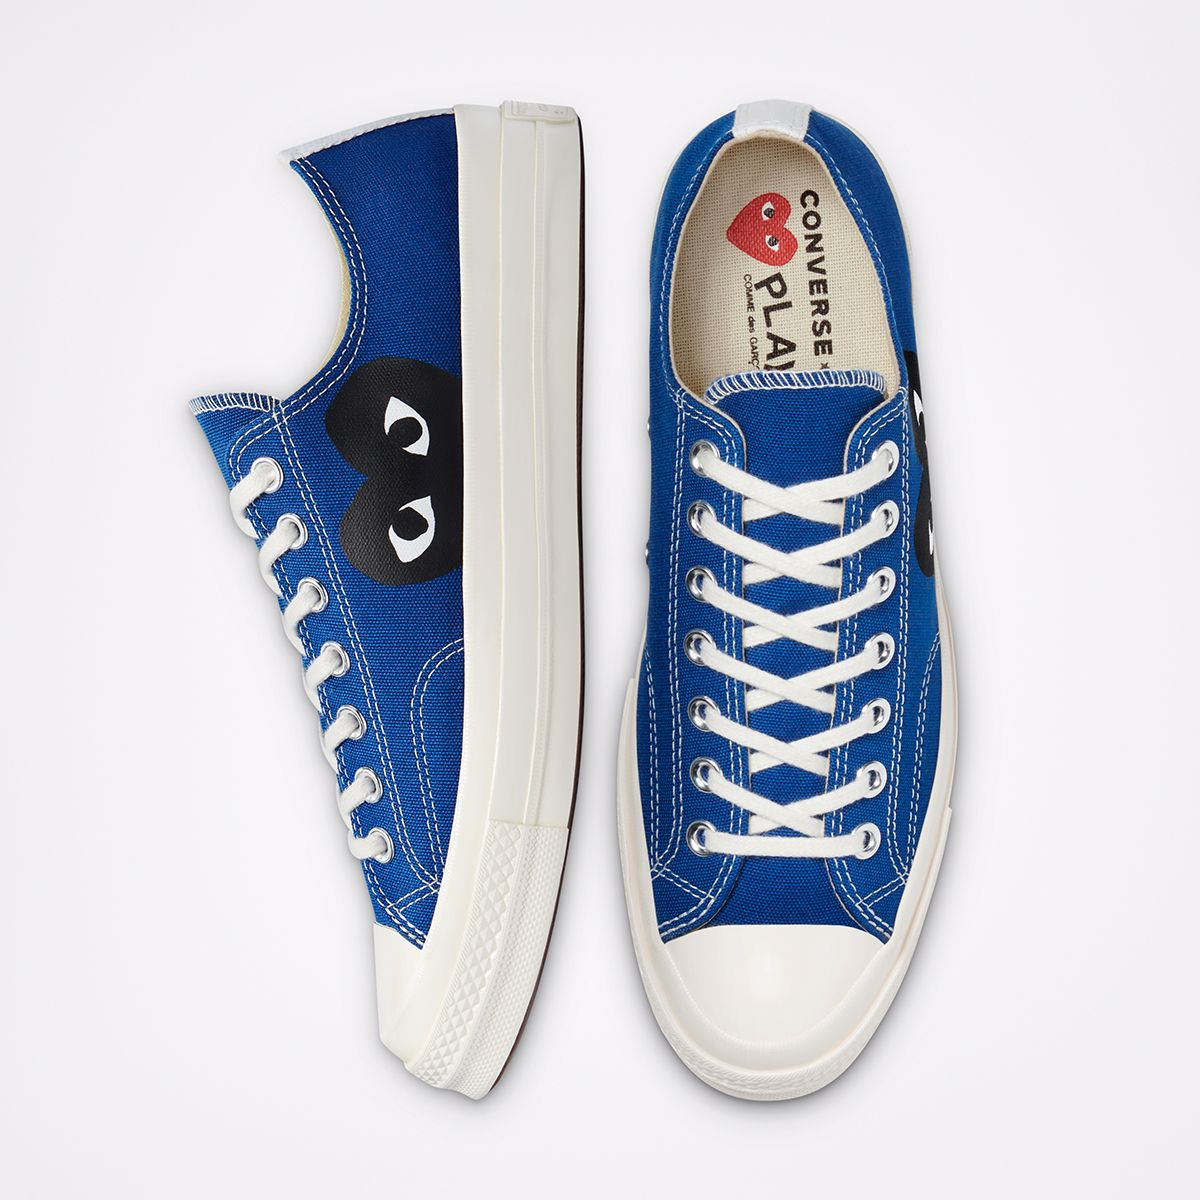 CdG PLAY Is Dropping Some New Chucks We Actually Want to Wear 43